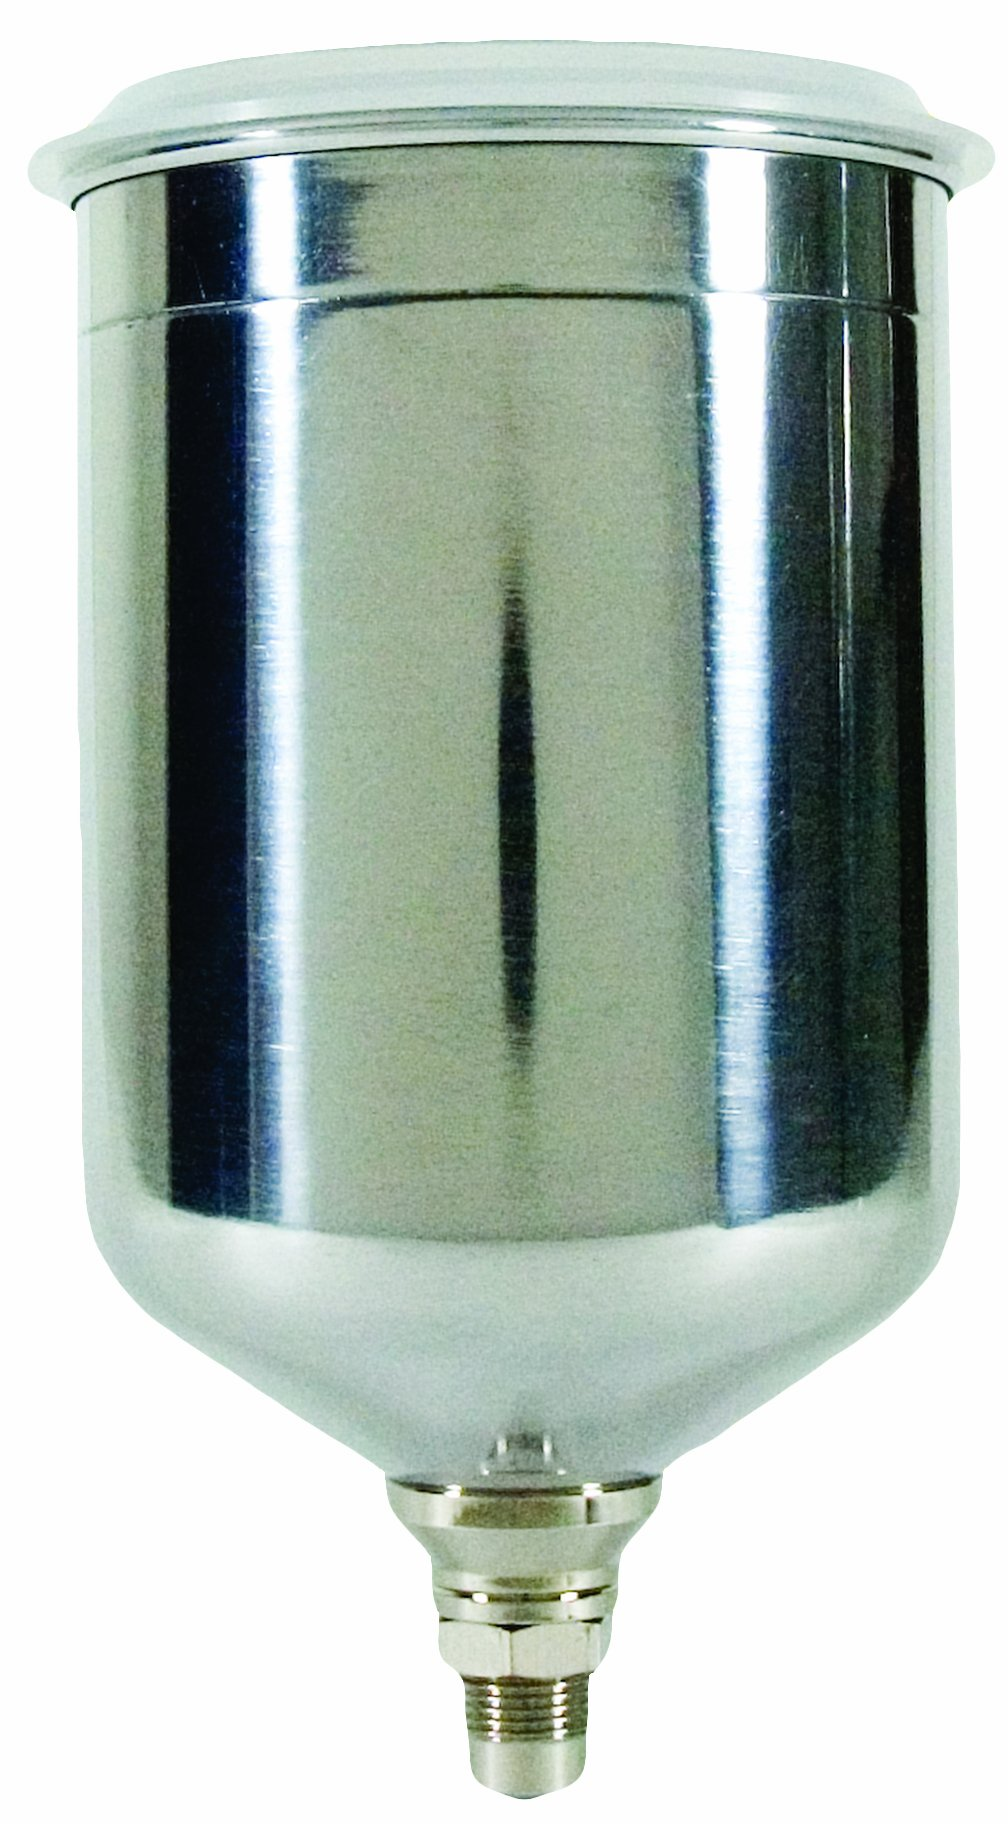 Tekna 702576 900cc Gravity Feed Aluminum Cup with Plastic Push-On Lid